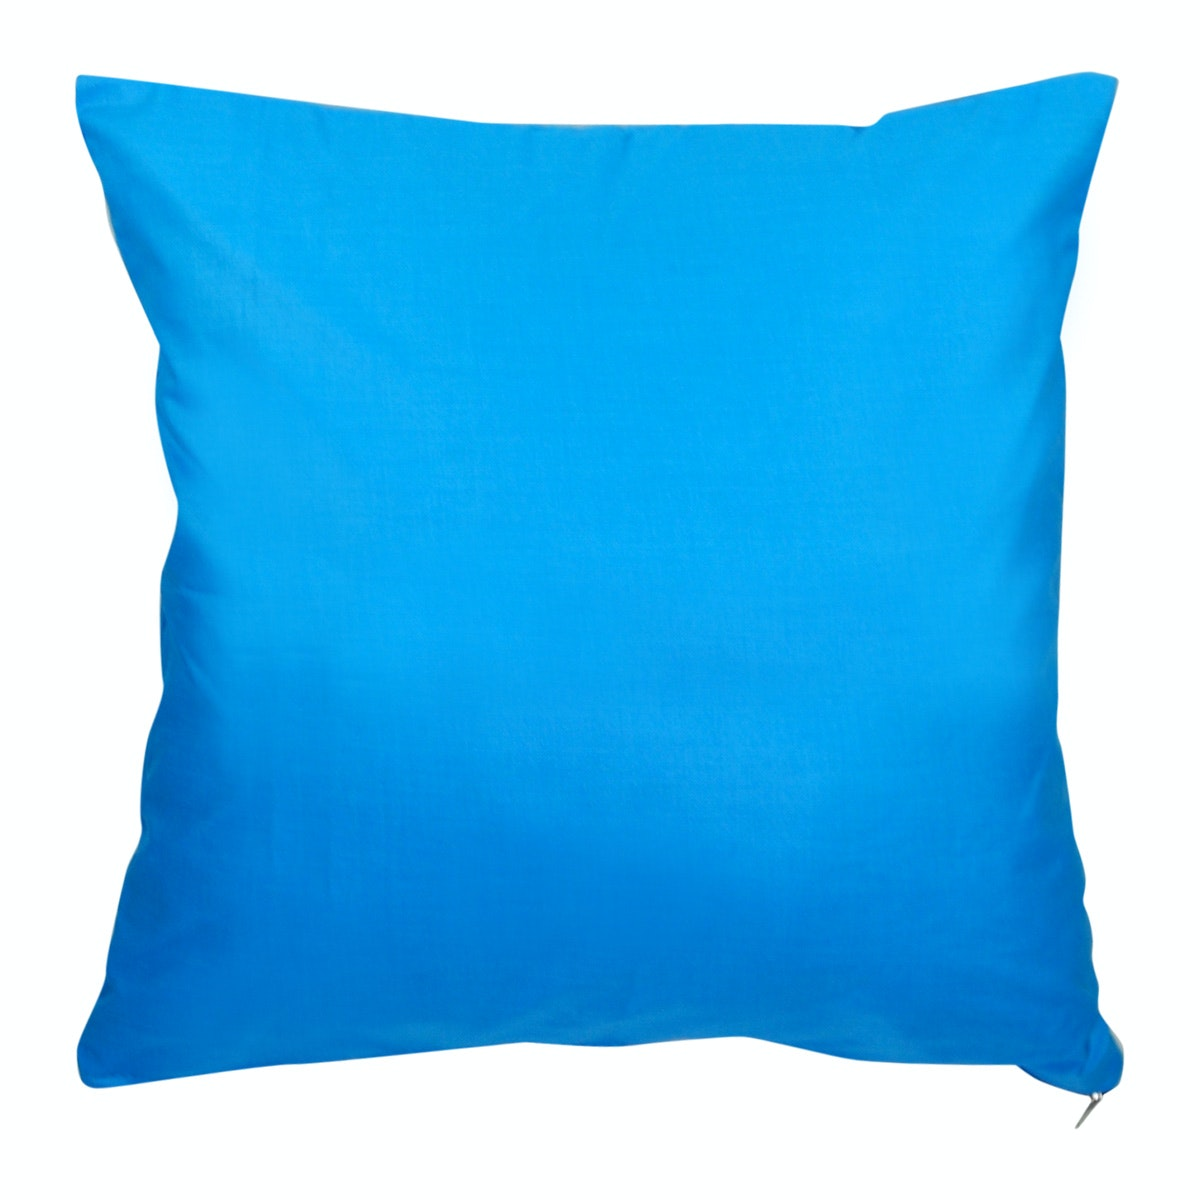 Stiletto Living Cushion Cover / Sarung Bantal Sofa Polos - Blue